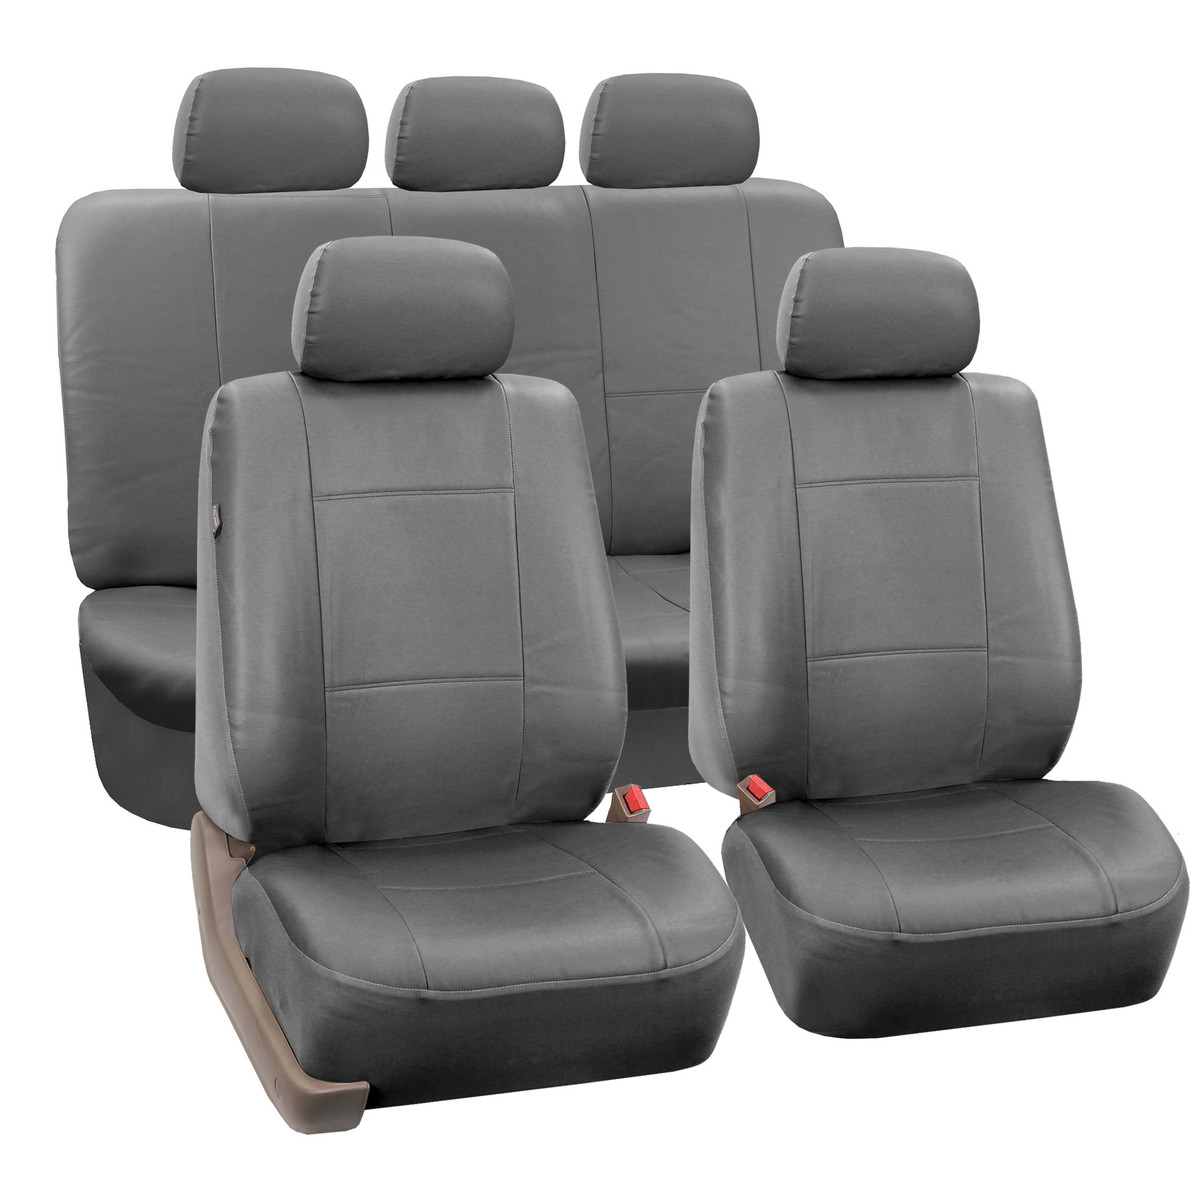 PU002115 gray seat cover 01